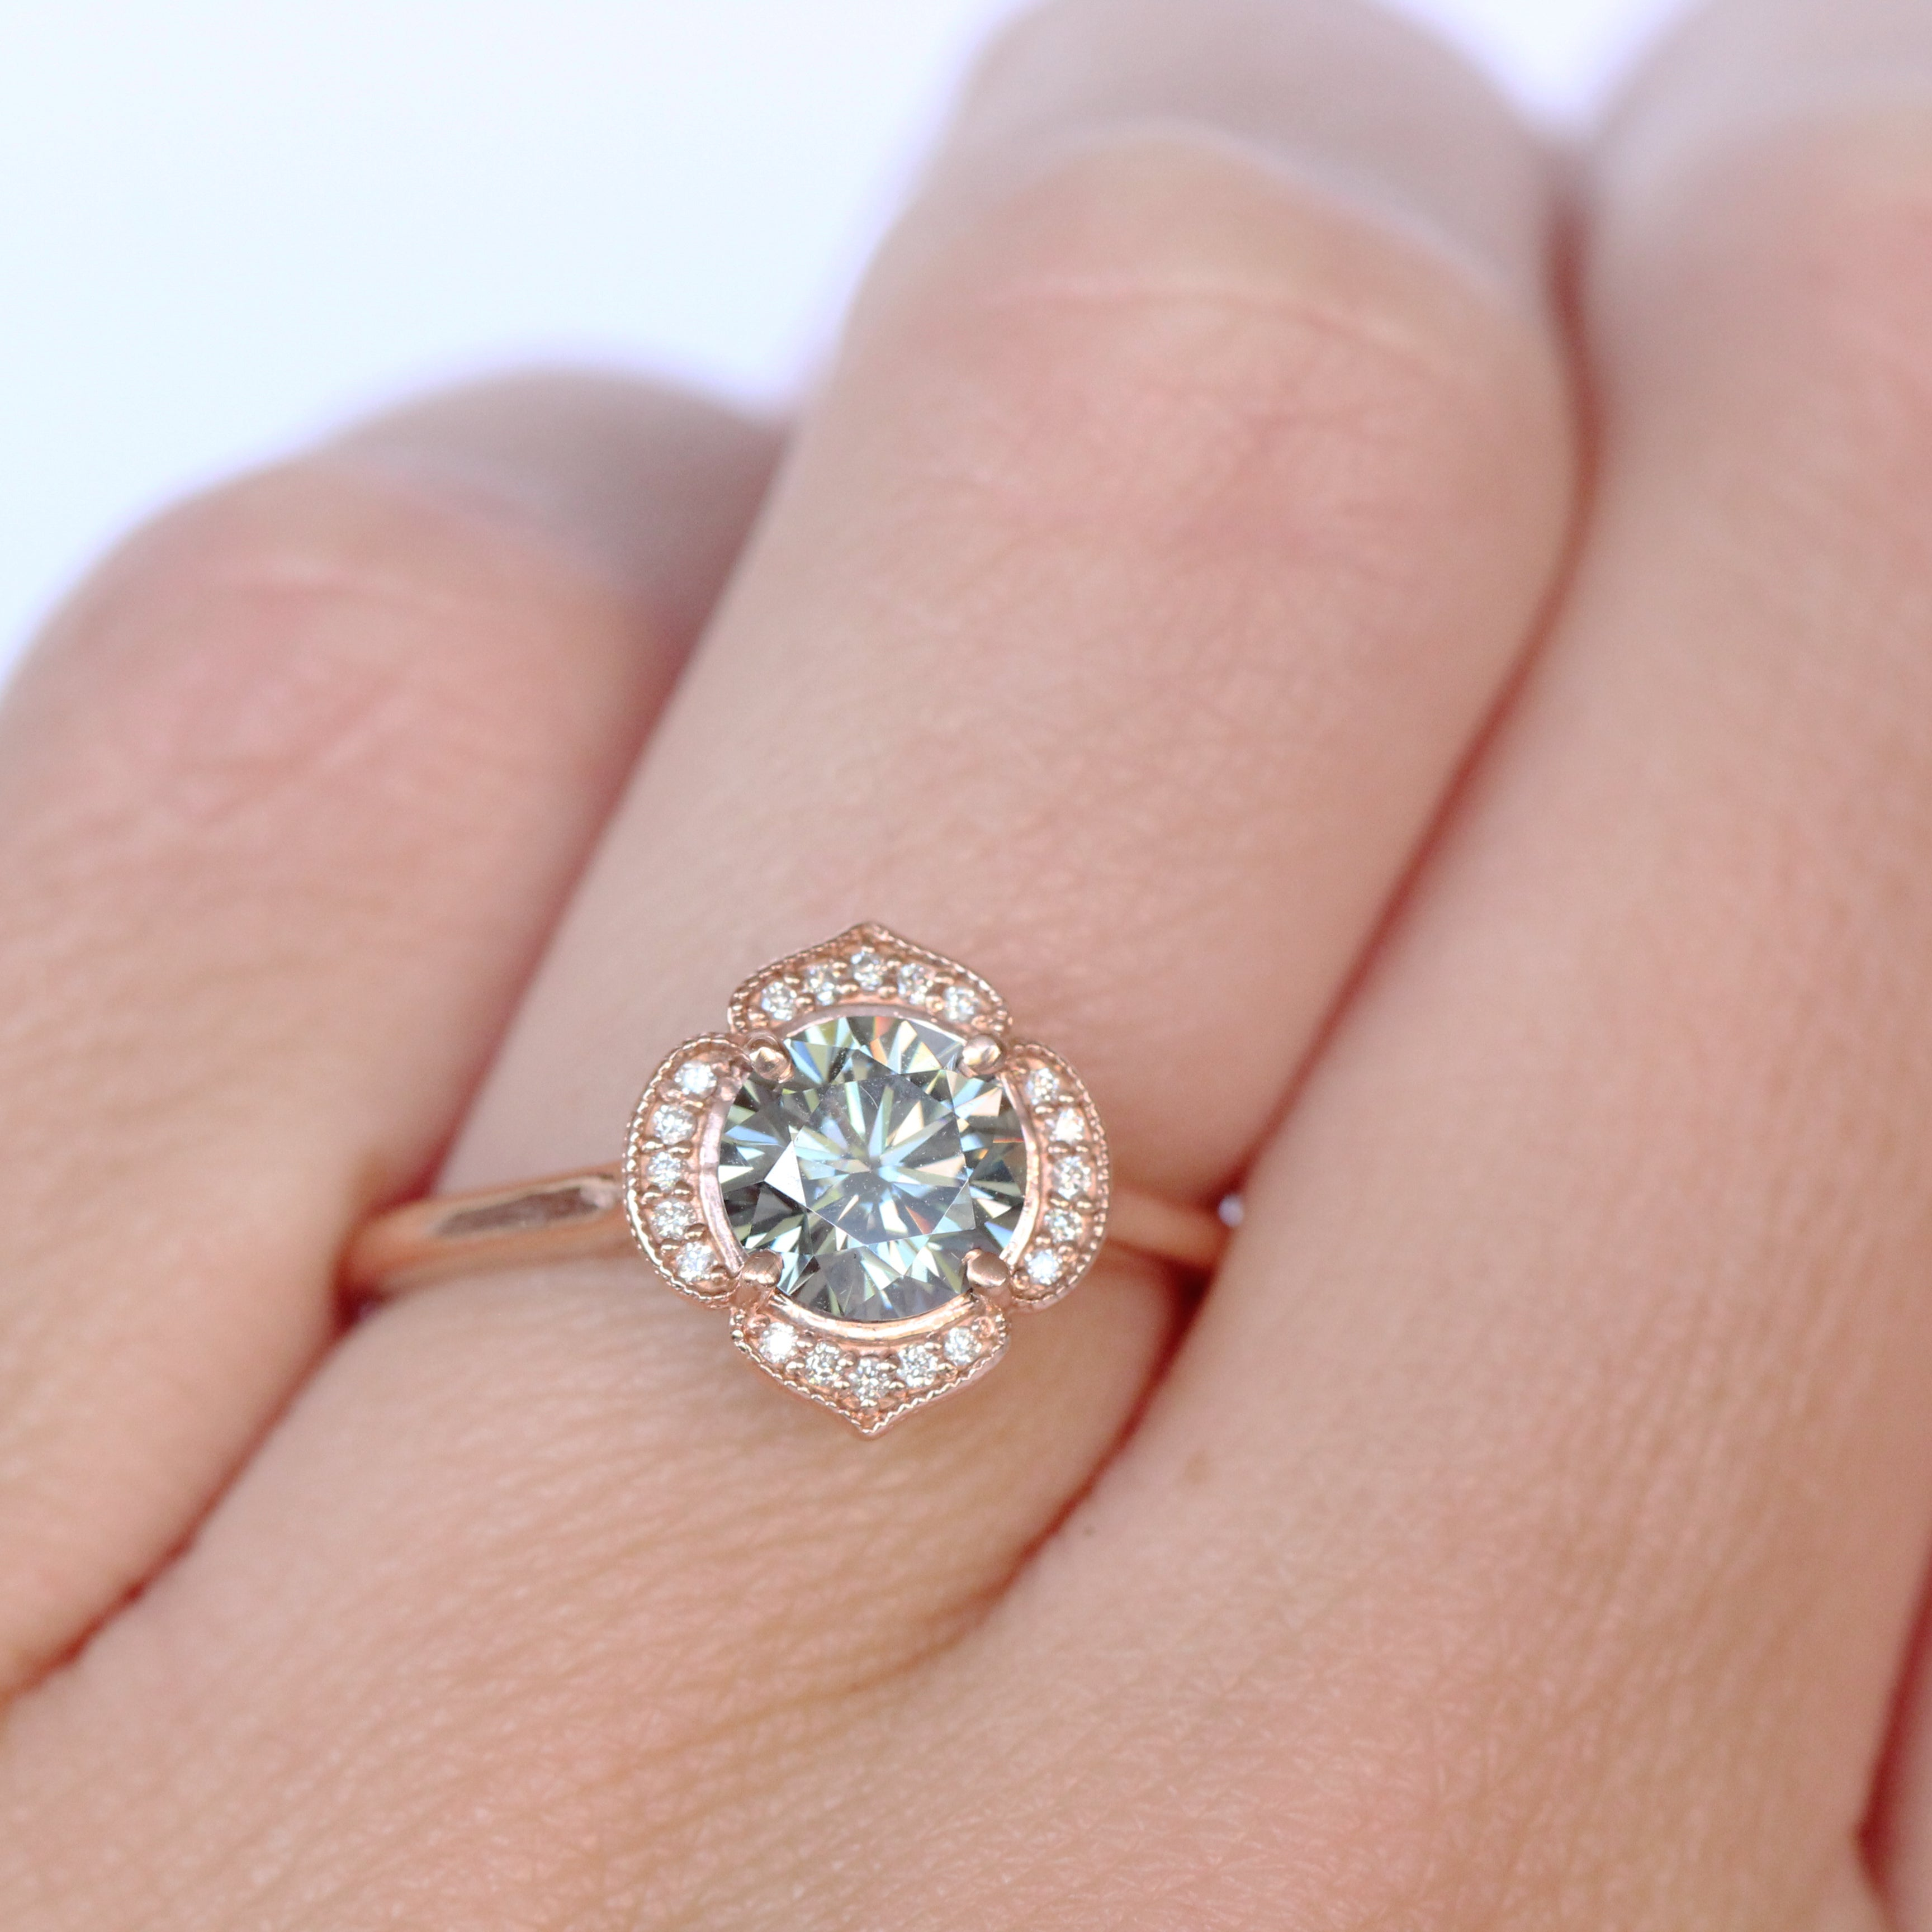 Clementine Ring with a Gray Moissanite in 10k Rose Gold - Ready to Size and Ship